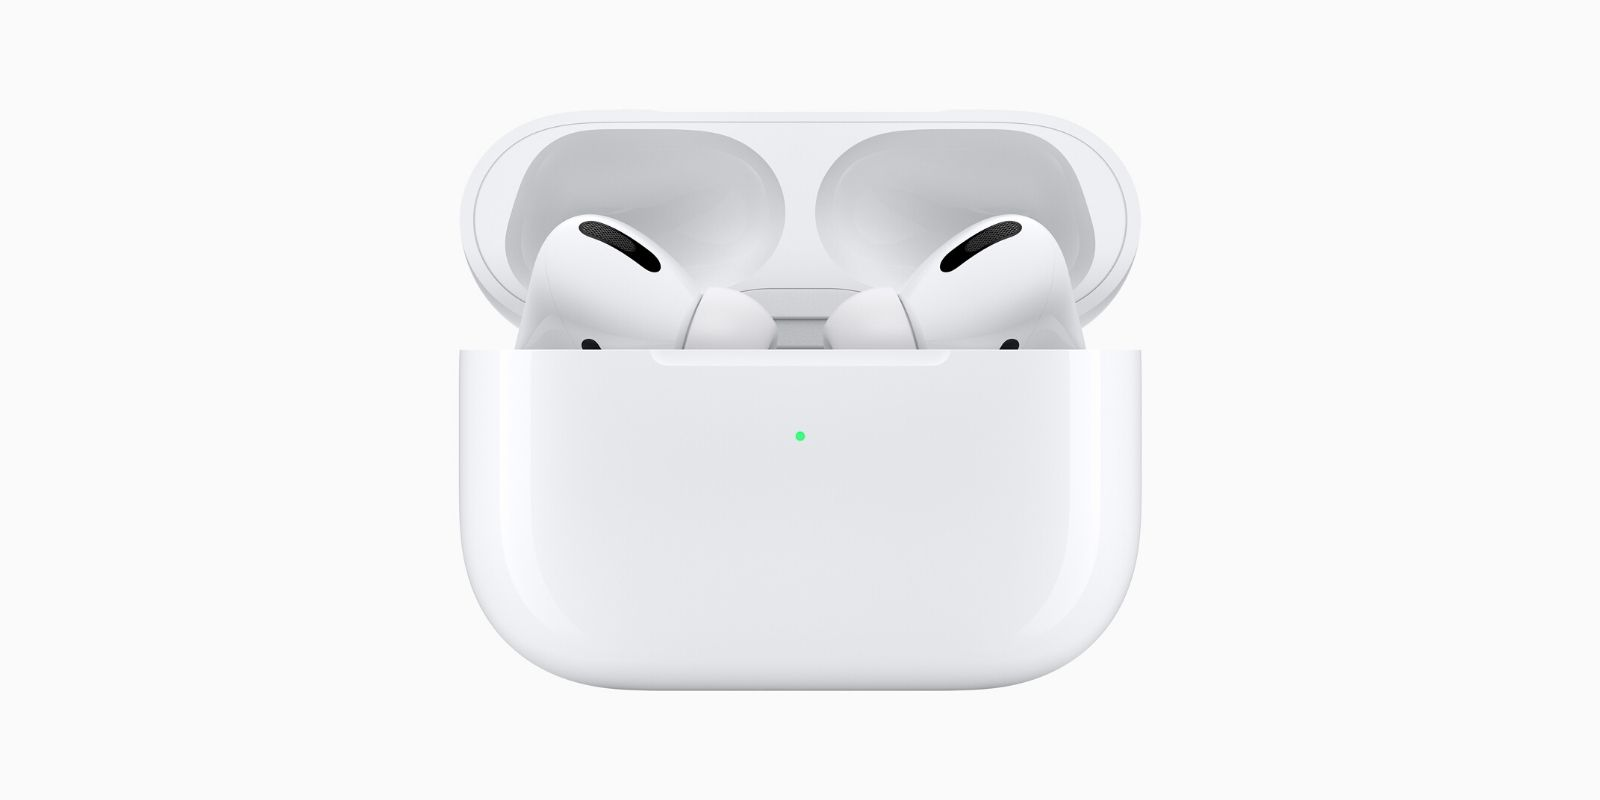 Apple AirPods pro case